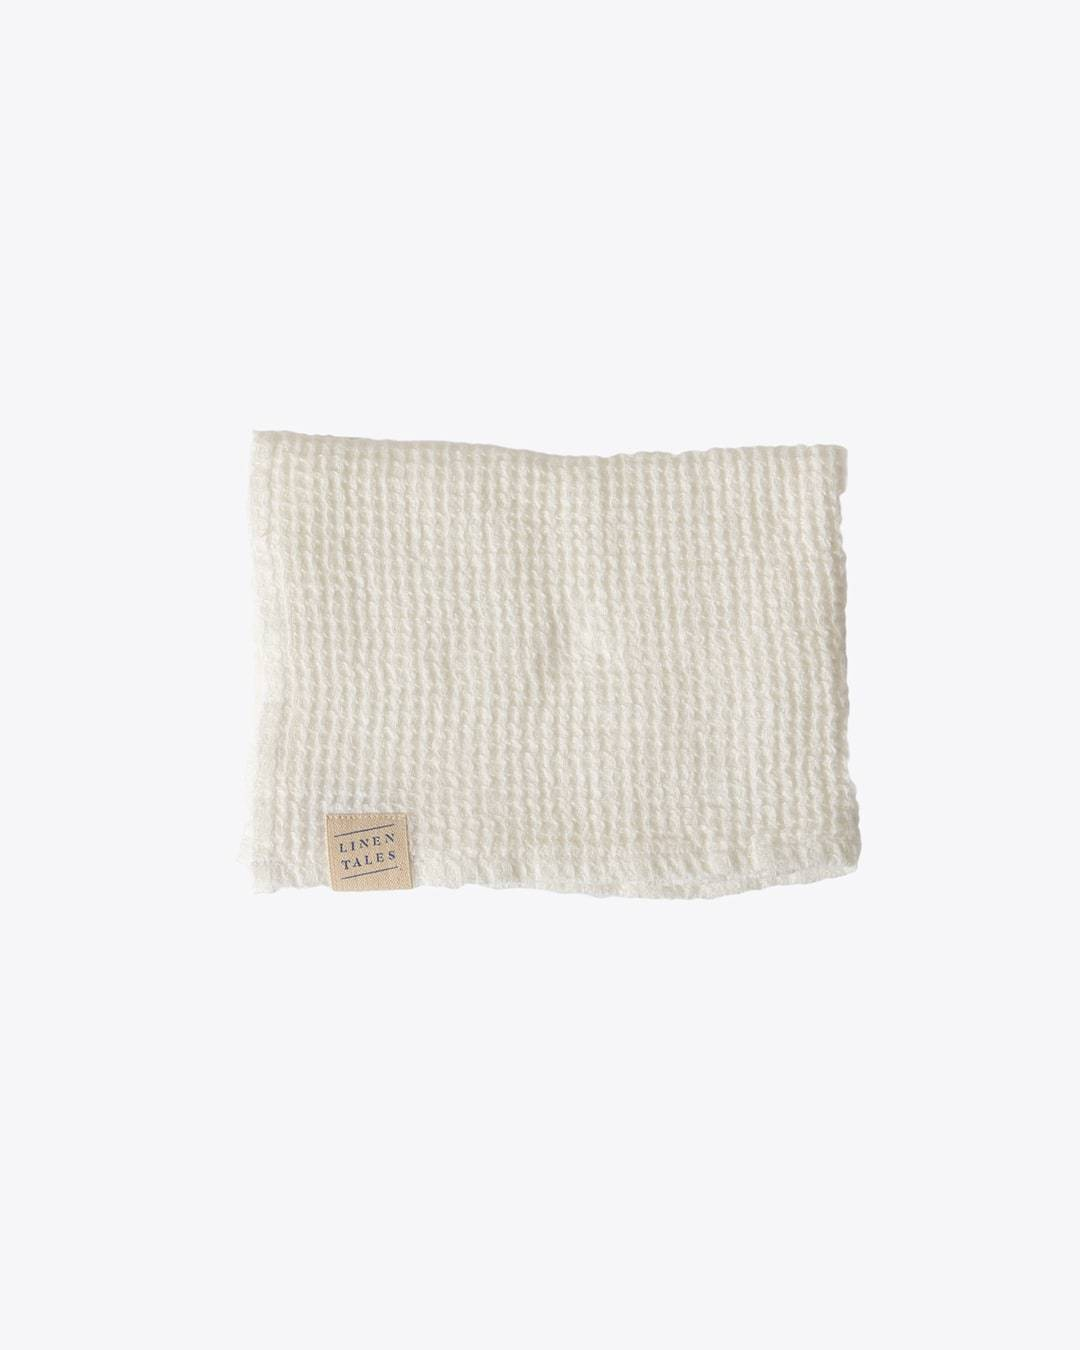 Linen Tales Waffle Hand Towel White Linen Tales